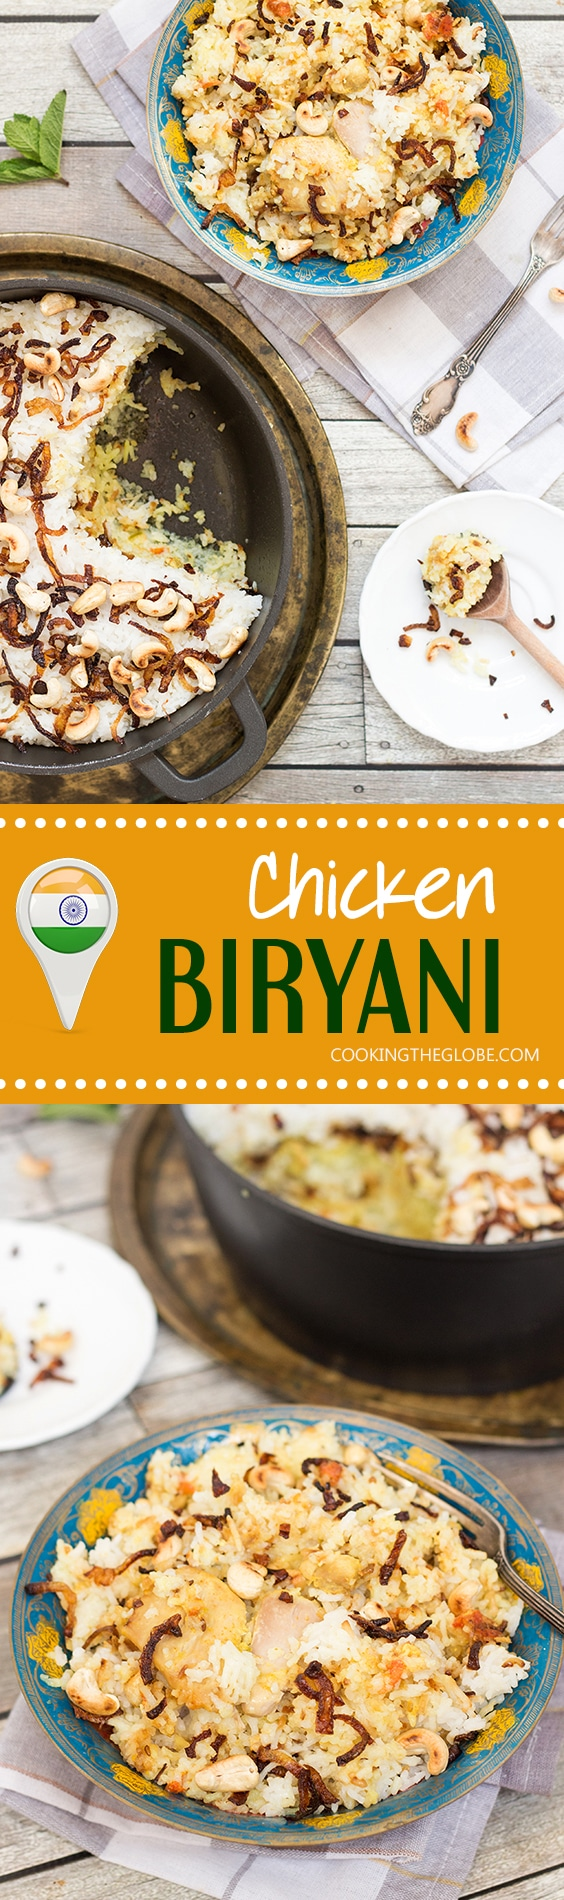 Chicken Biryani is one of the most famous Indian dishes. The unique mix of spices, rice, meat and veggies will blow your mind! | cookingtheglobe.com